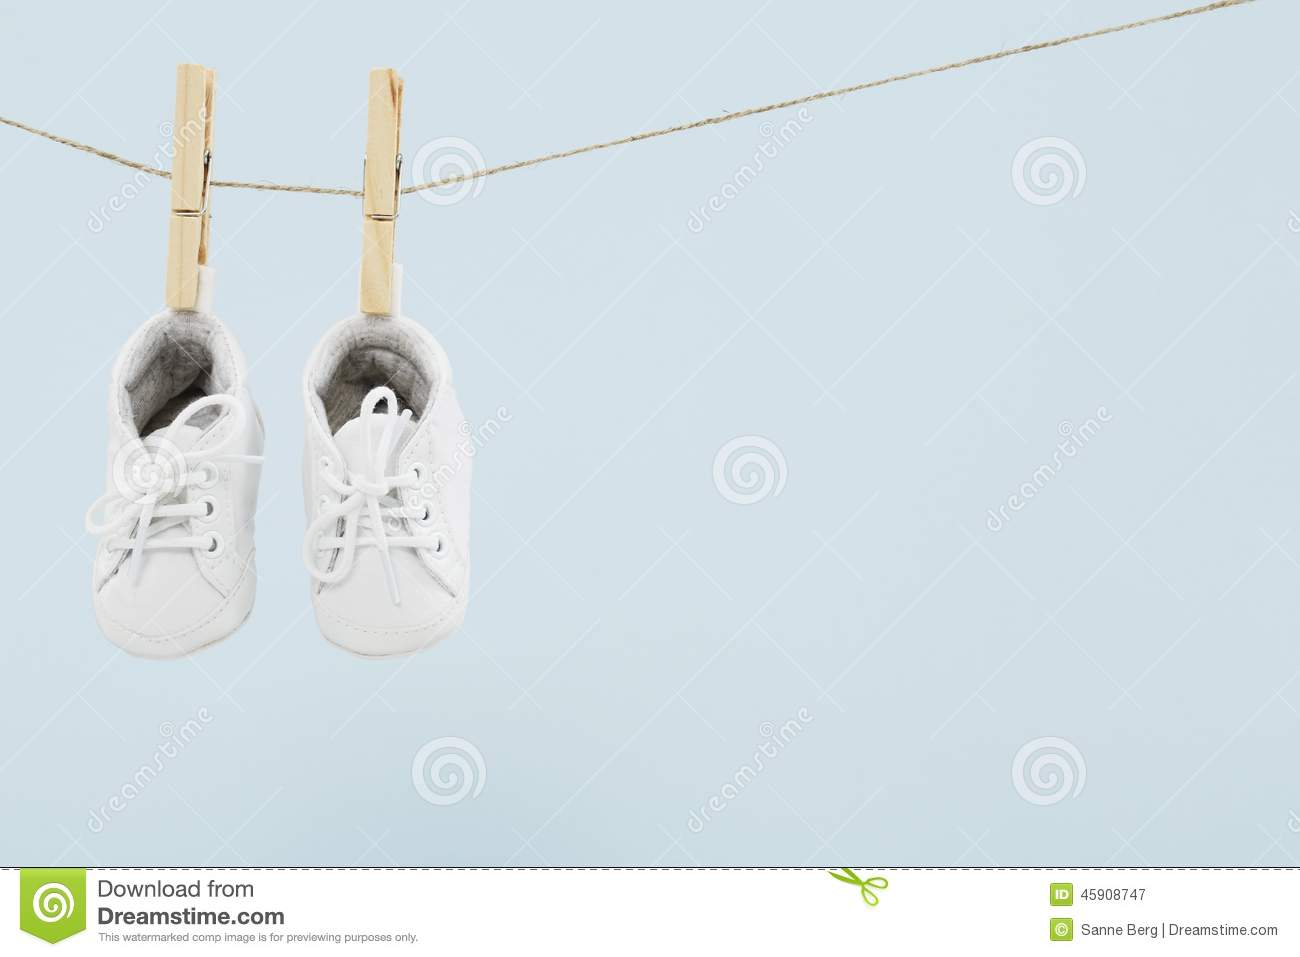 baby wear hanging in clothespins on washing line royalty